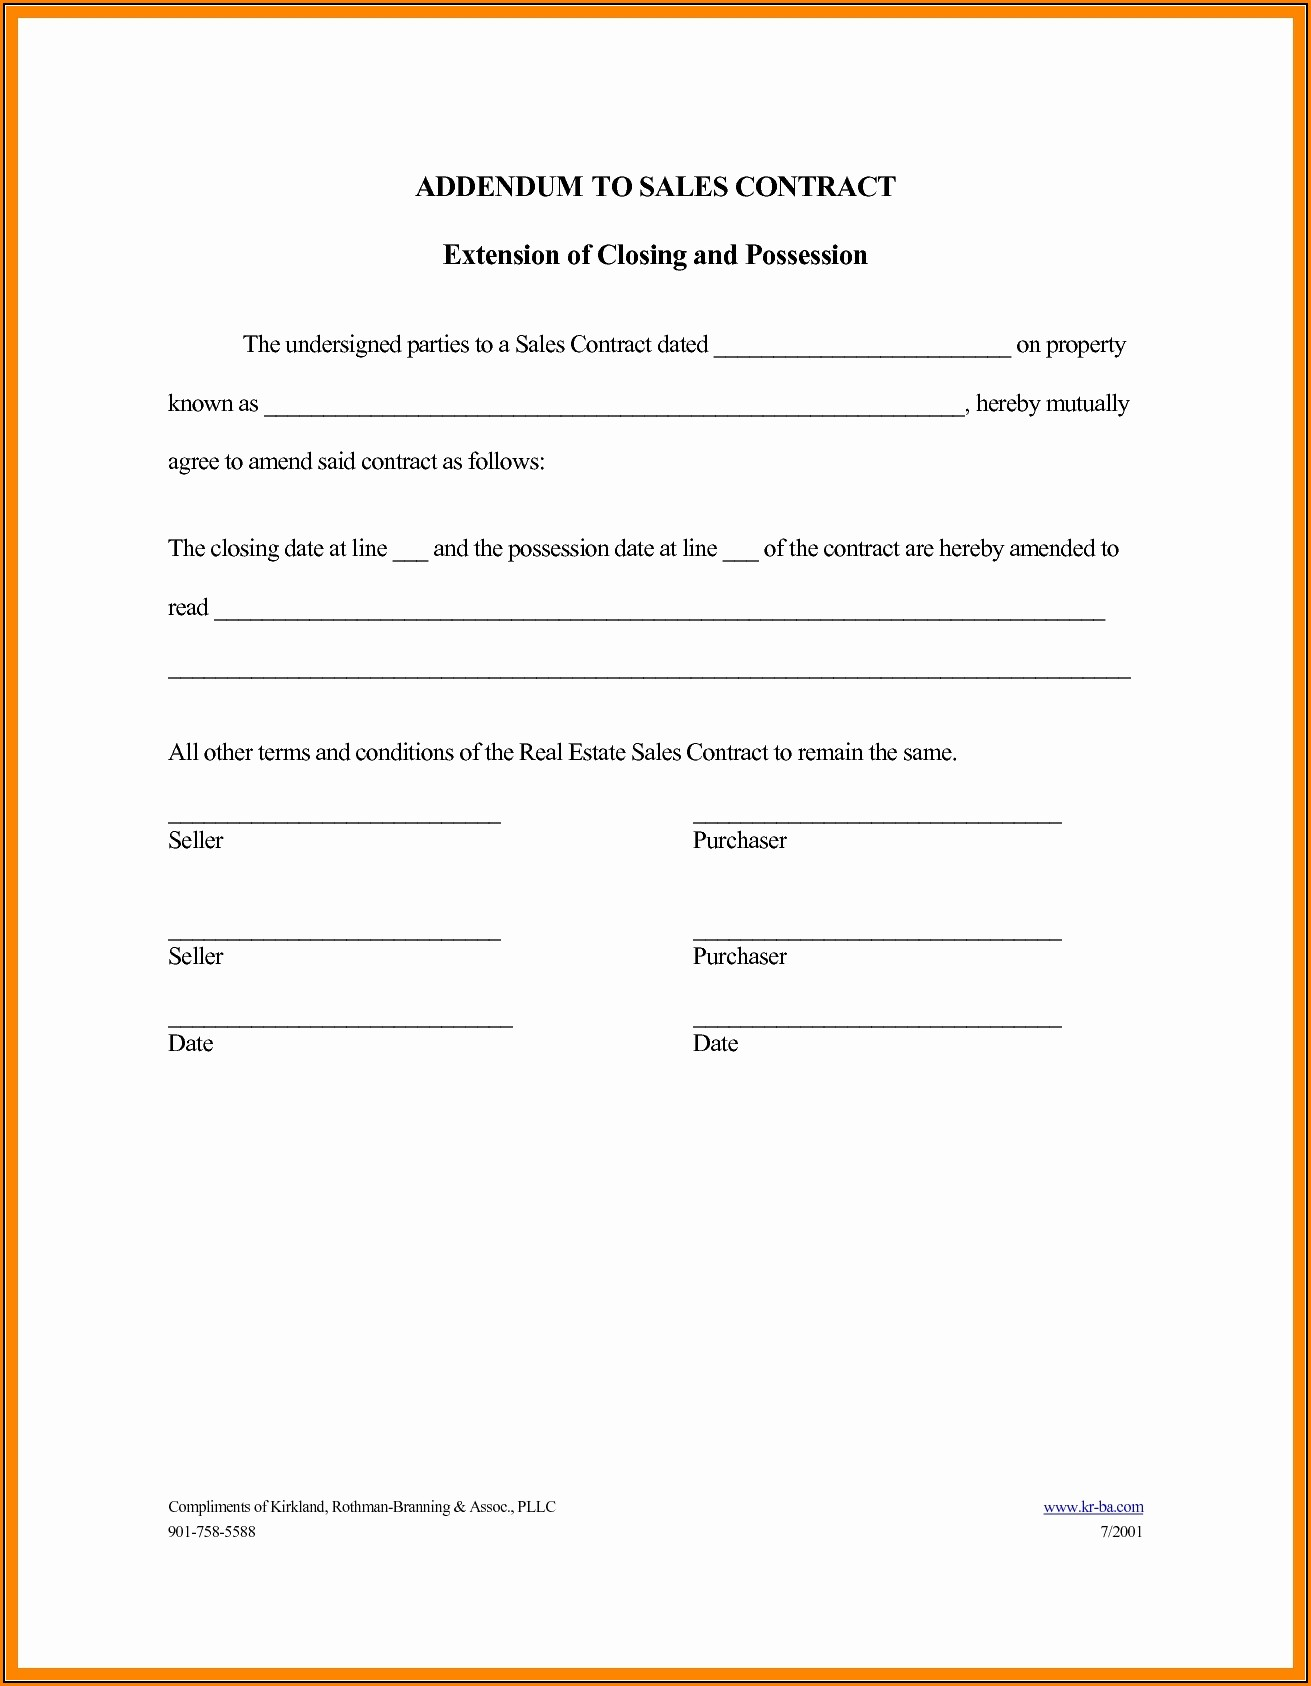 Construction Contract Addendum Template